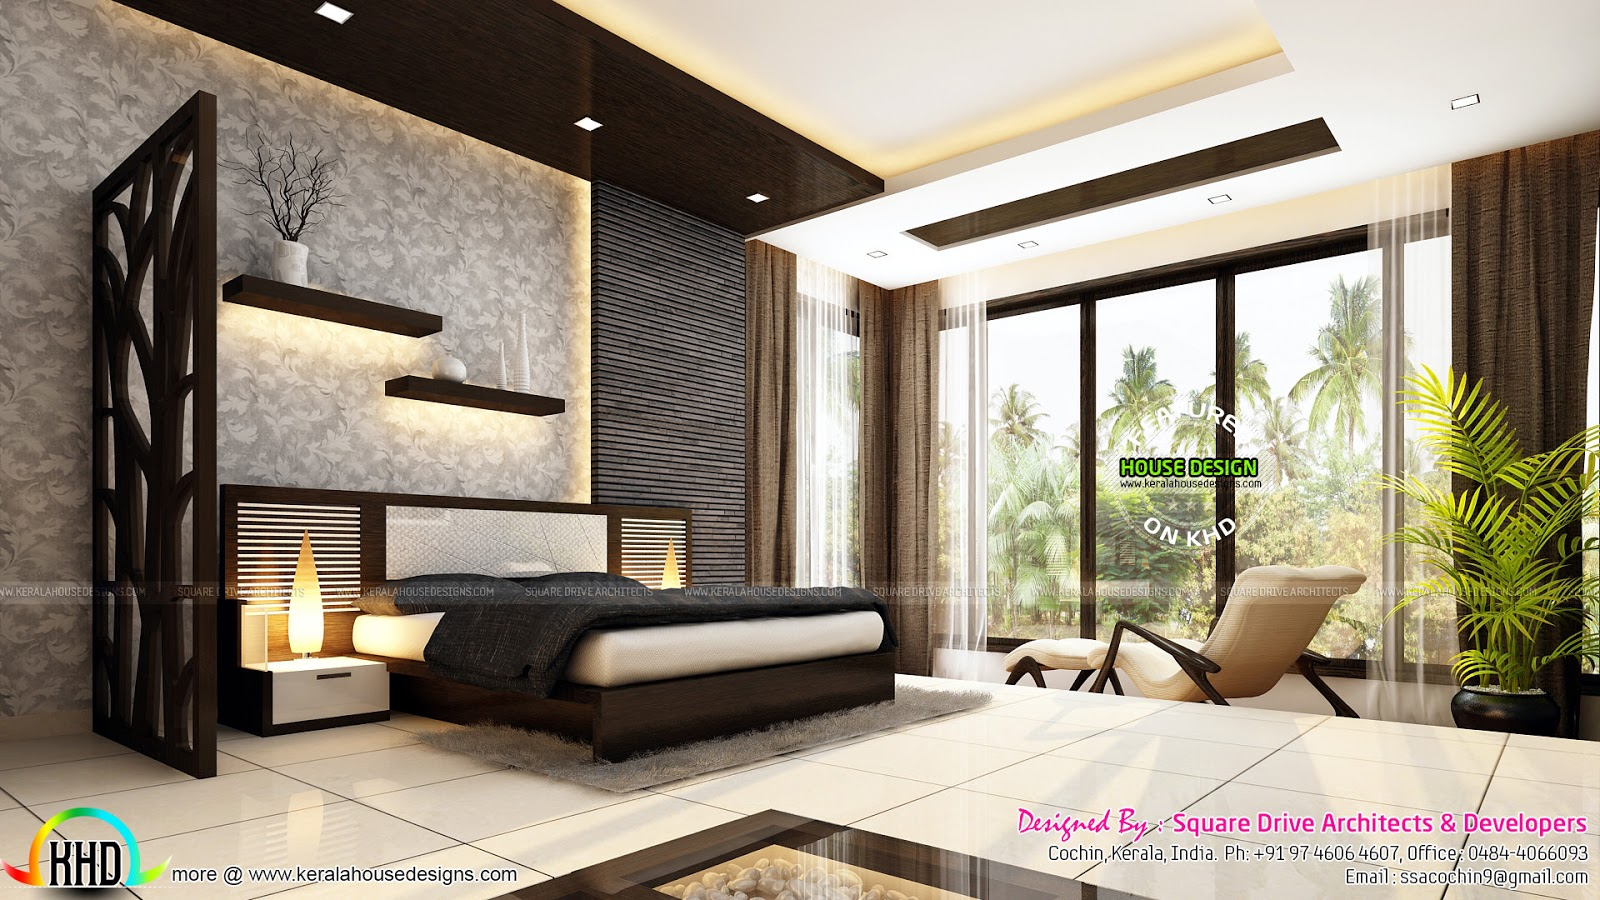 Very beautiful modern interior designs - Kerala home ... on Beautiful Room  id=19619